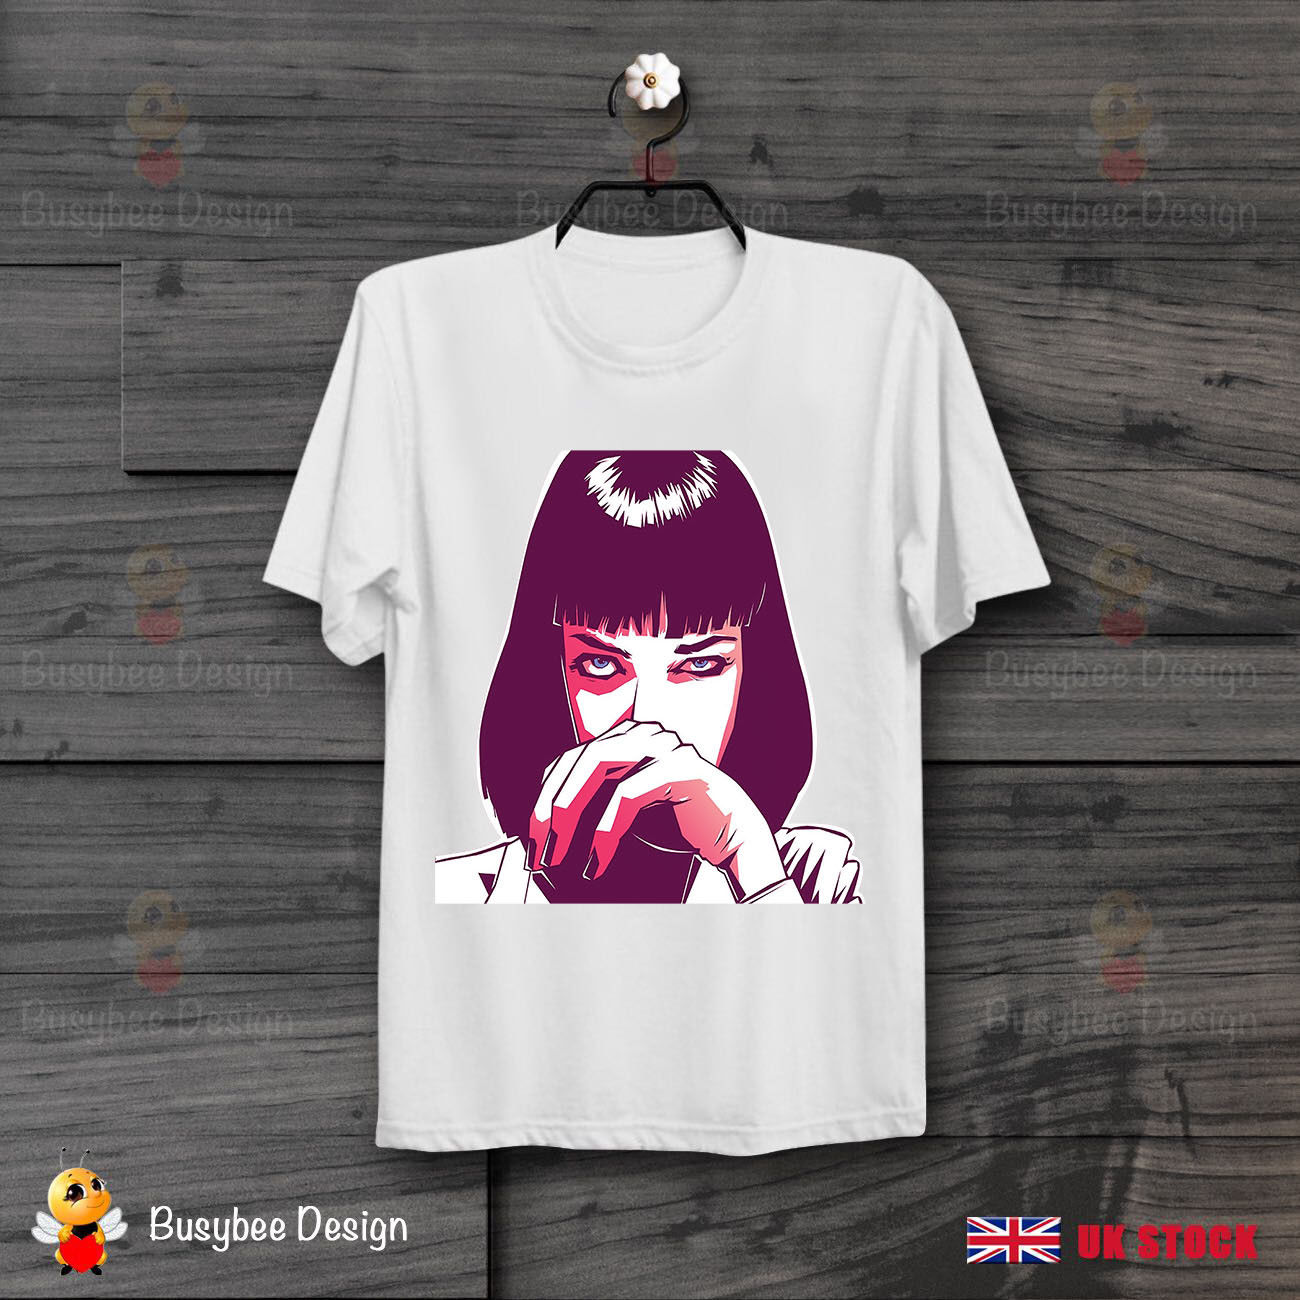 pulp-fiction-wallace-quentin-font-b-tarantino-b-font-drug-vintage-unisex-t-shirt-b113-summer-2018-short-sleeve-plus-size-t-shirt-print-t-shirt